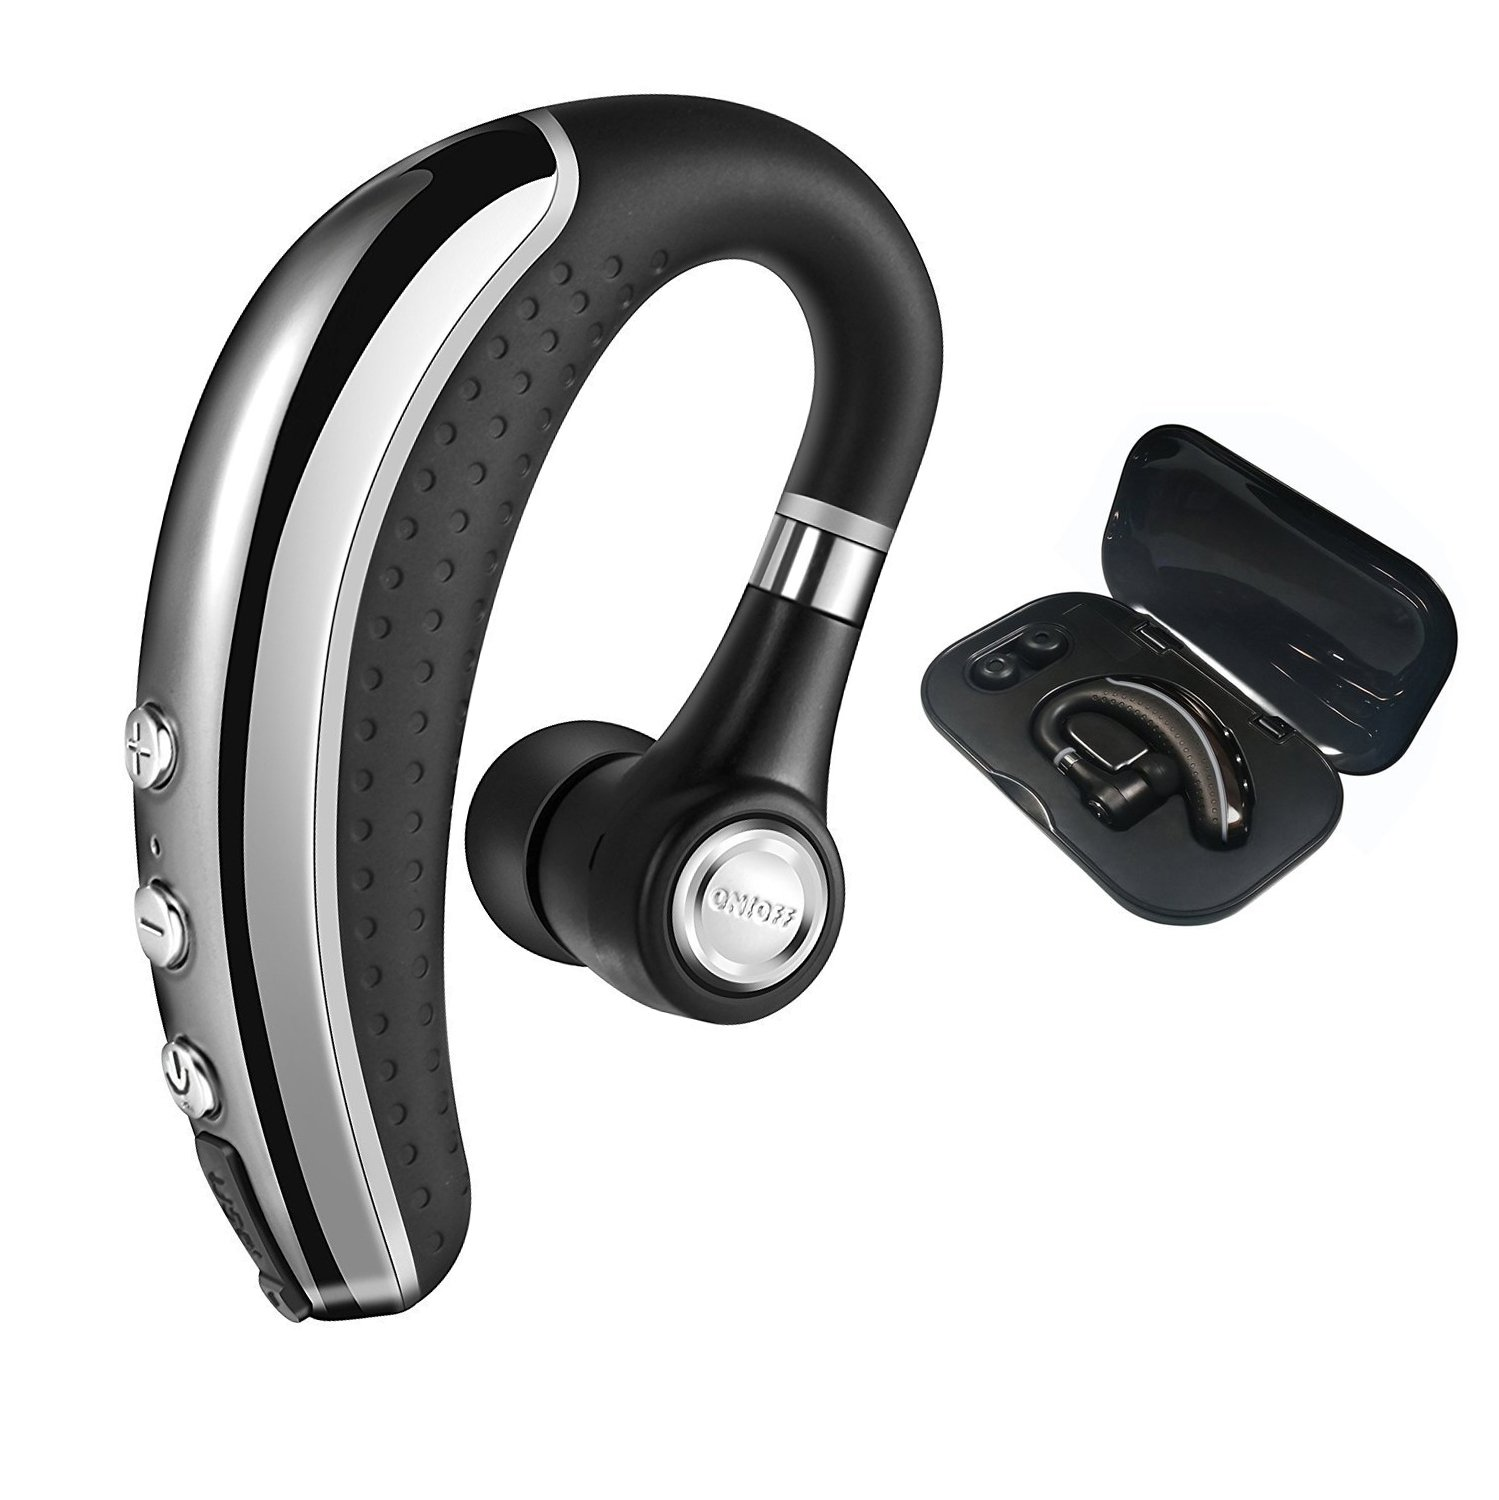 [Upgrade Version]Bluetooth Headset,Ansion Wireless Bluetooth 4.1 Earpiece Earbuds Earphones Headphones with Noise Reduction,Mute Switch,Hands Free with Mic for Office/Business/Workout/Driver/Trucker by Ansion